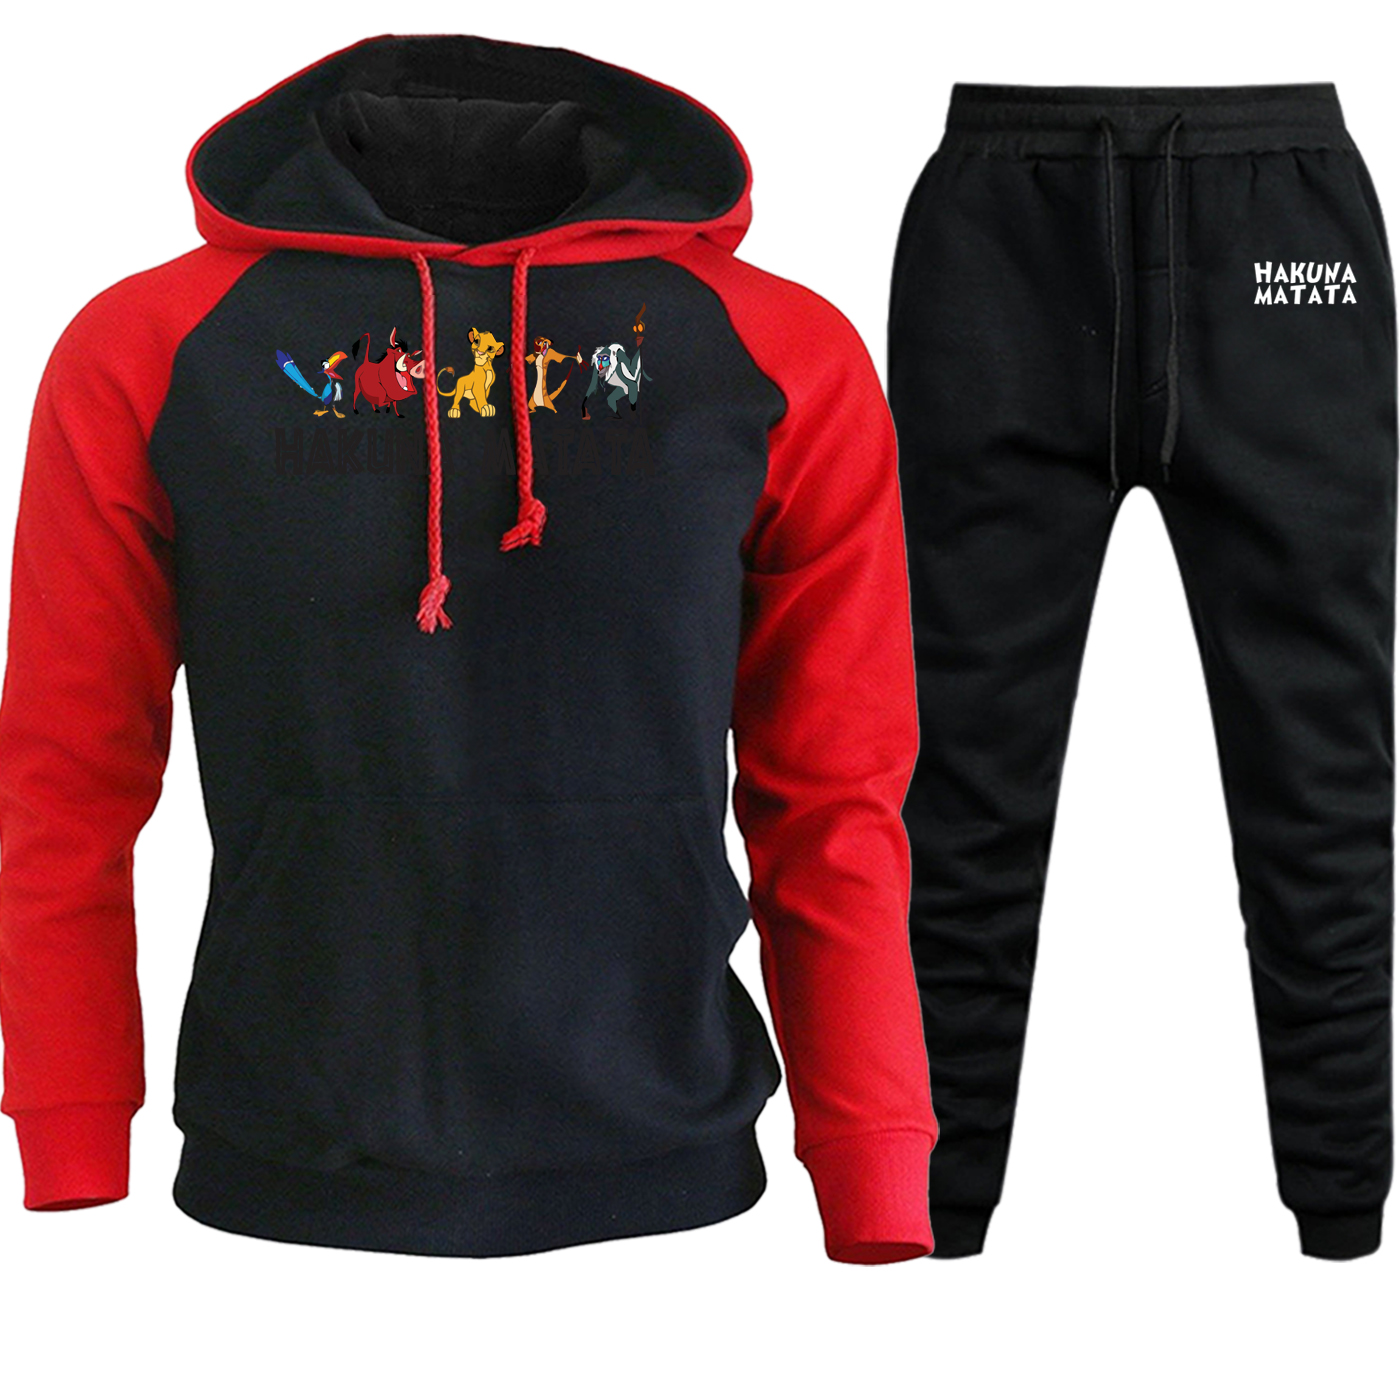 The Lion King Streetwear Funny Simba Raglan Men Hoodies Suit New Autumn Winter Pullover+Pants Sets Male Hip Hop Cartoon Hooded